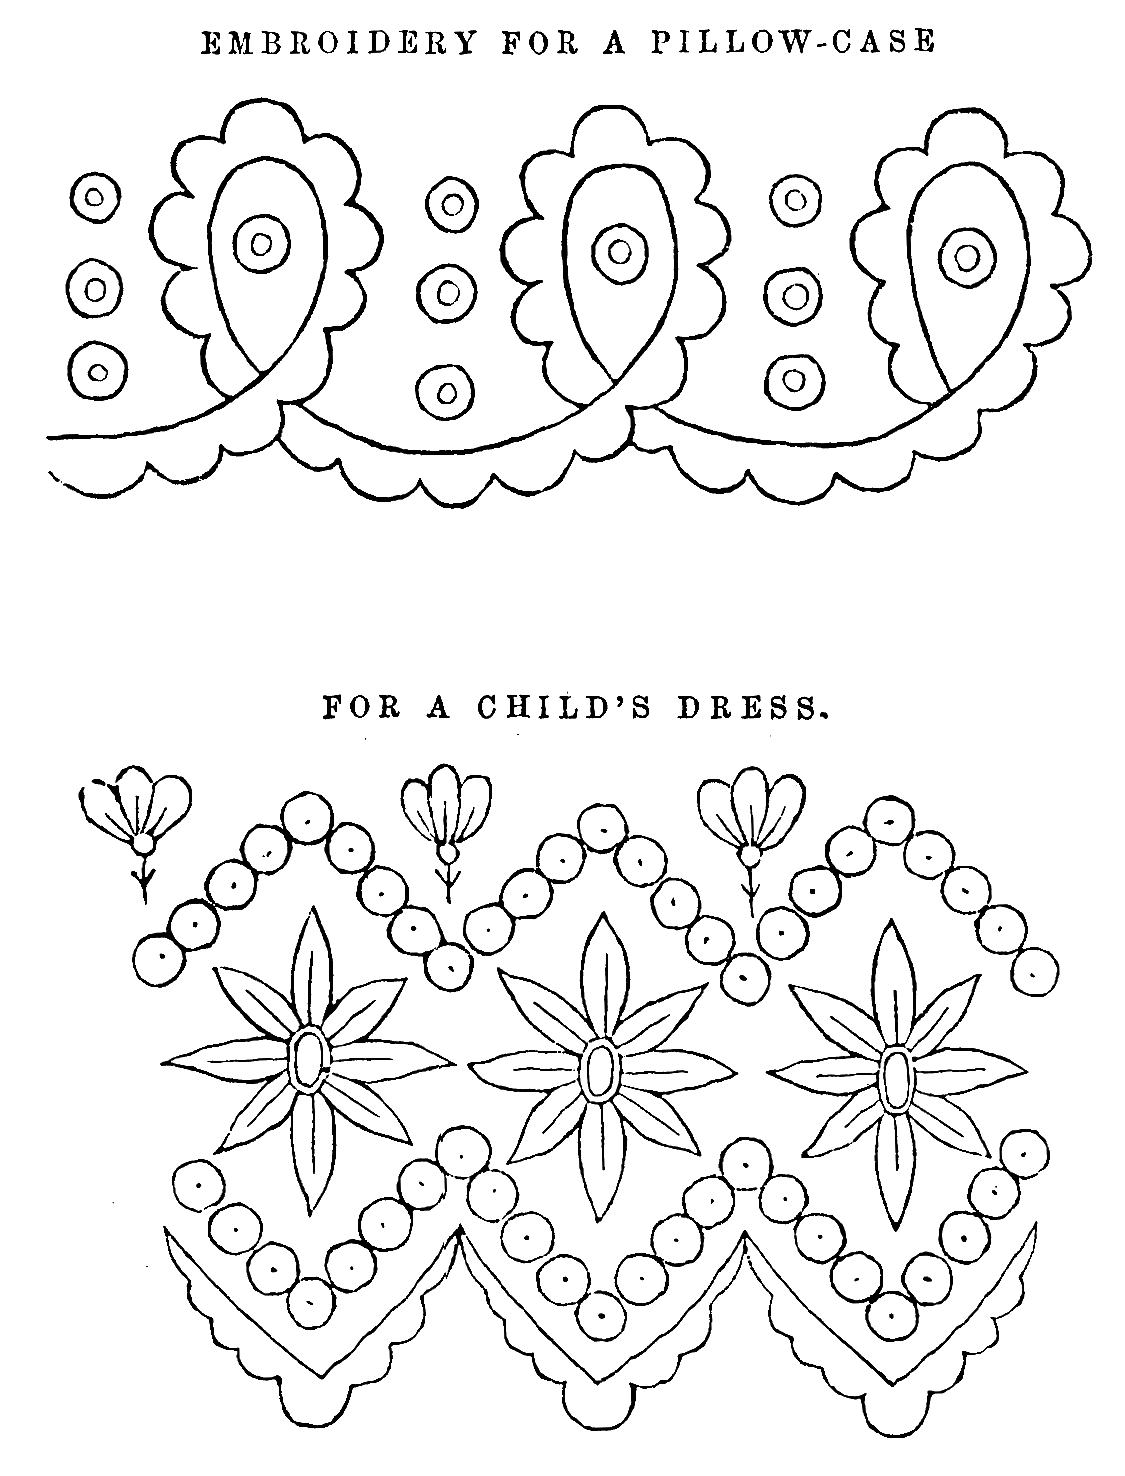 Embroidery Drawing Modern Transparent Png Clipart Free Download